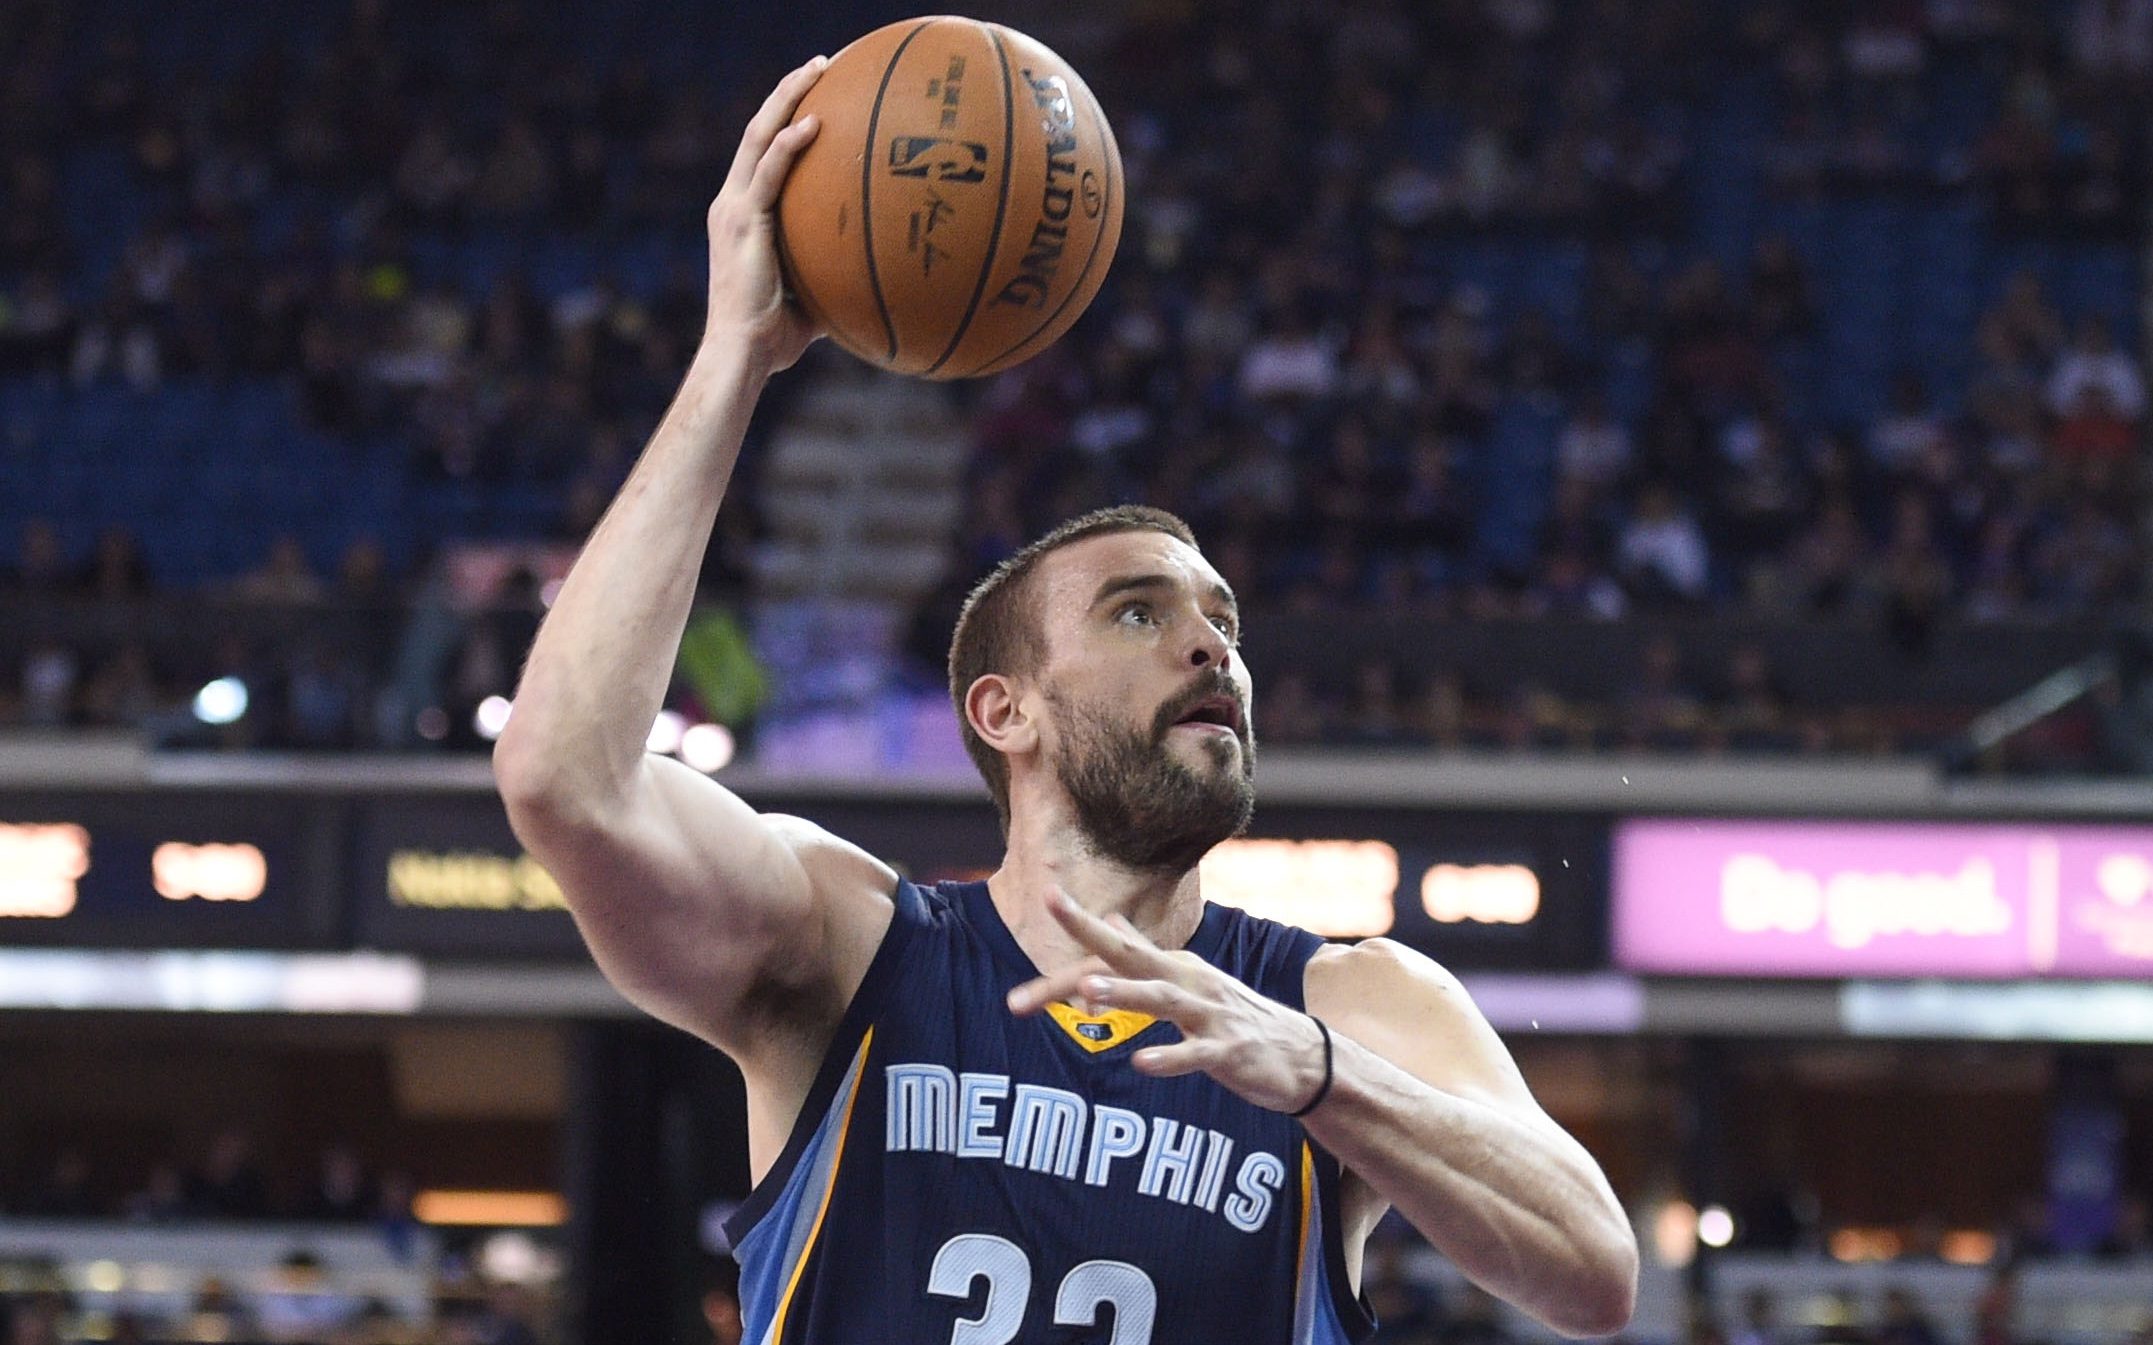 Marc Gasol: Marc Gasol Wallpapers High Resolution And Quality Download